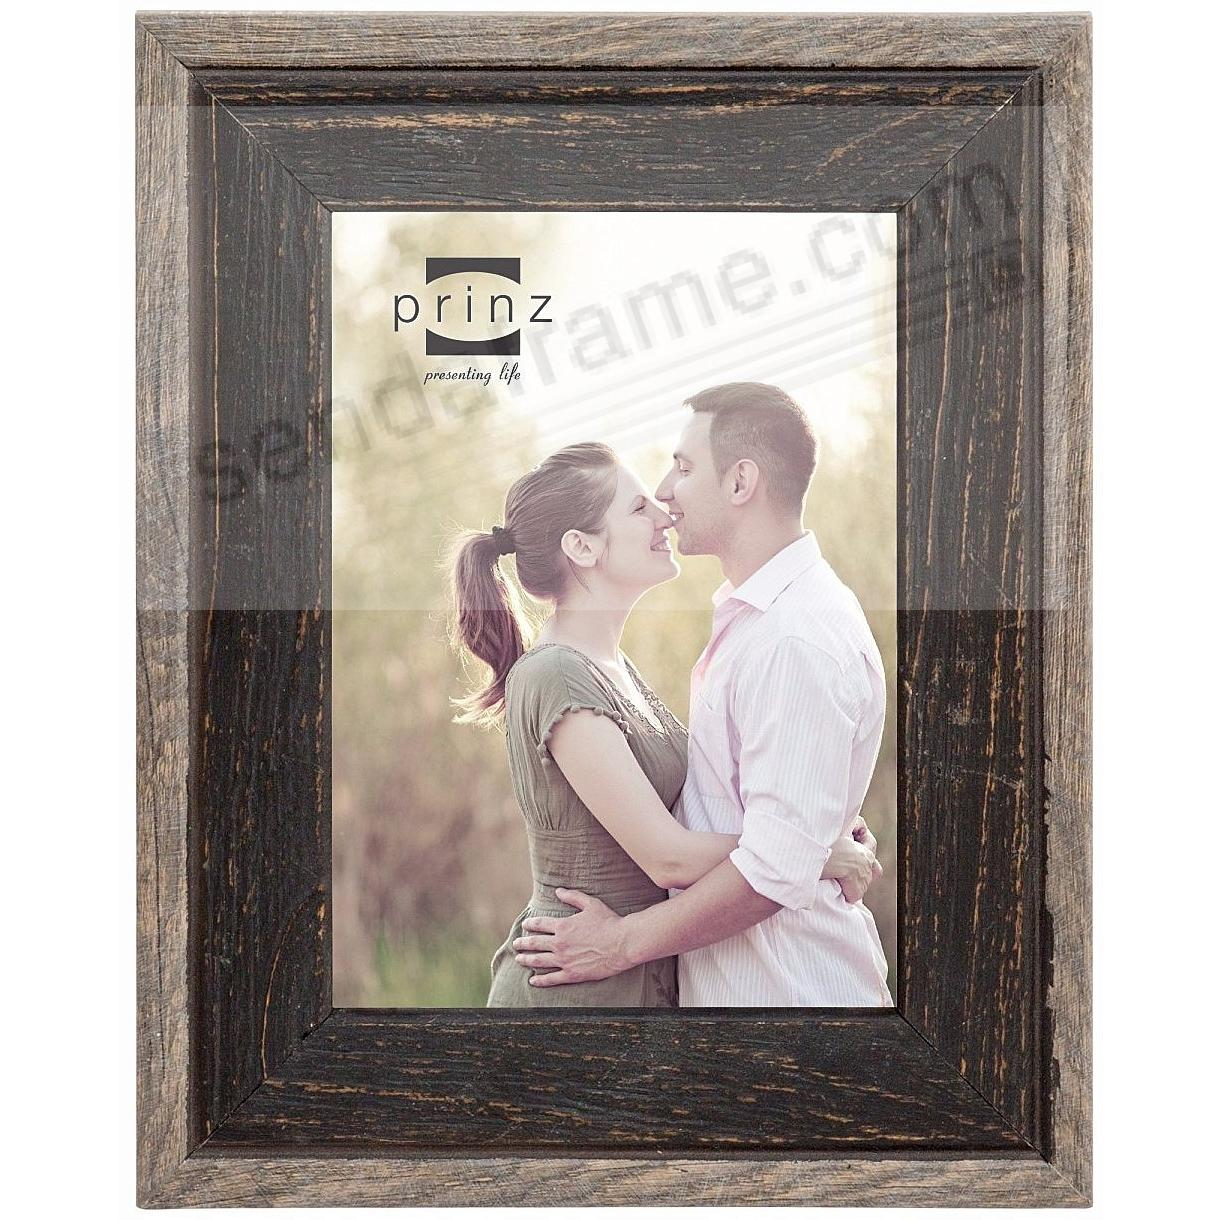 BRYCE BLACK/NATURAL Wood 4x6 Frame by Prinz® - Picture Frames, Photo ...